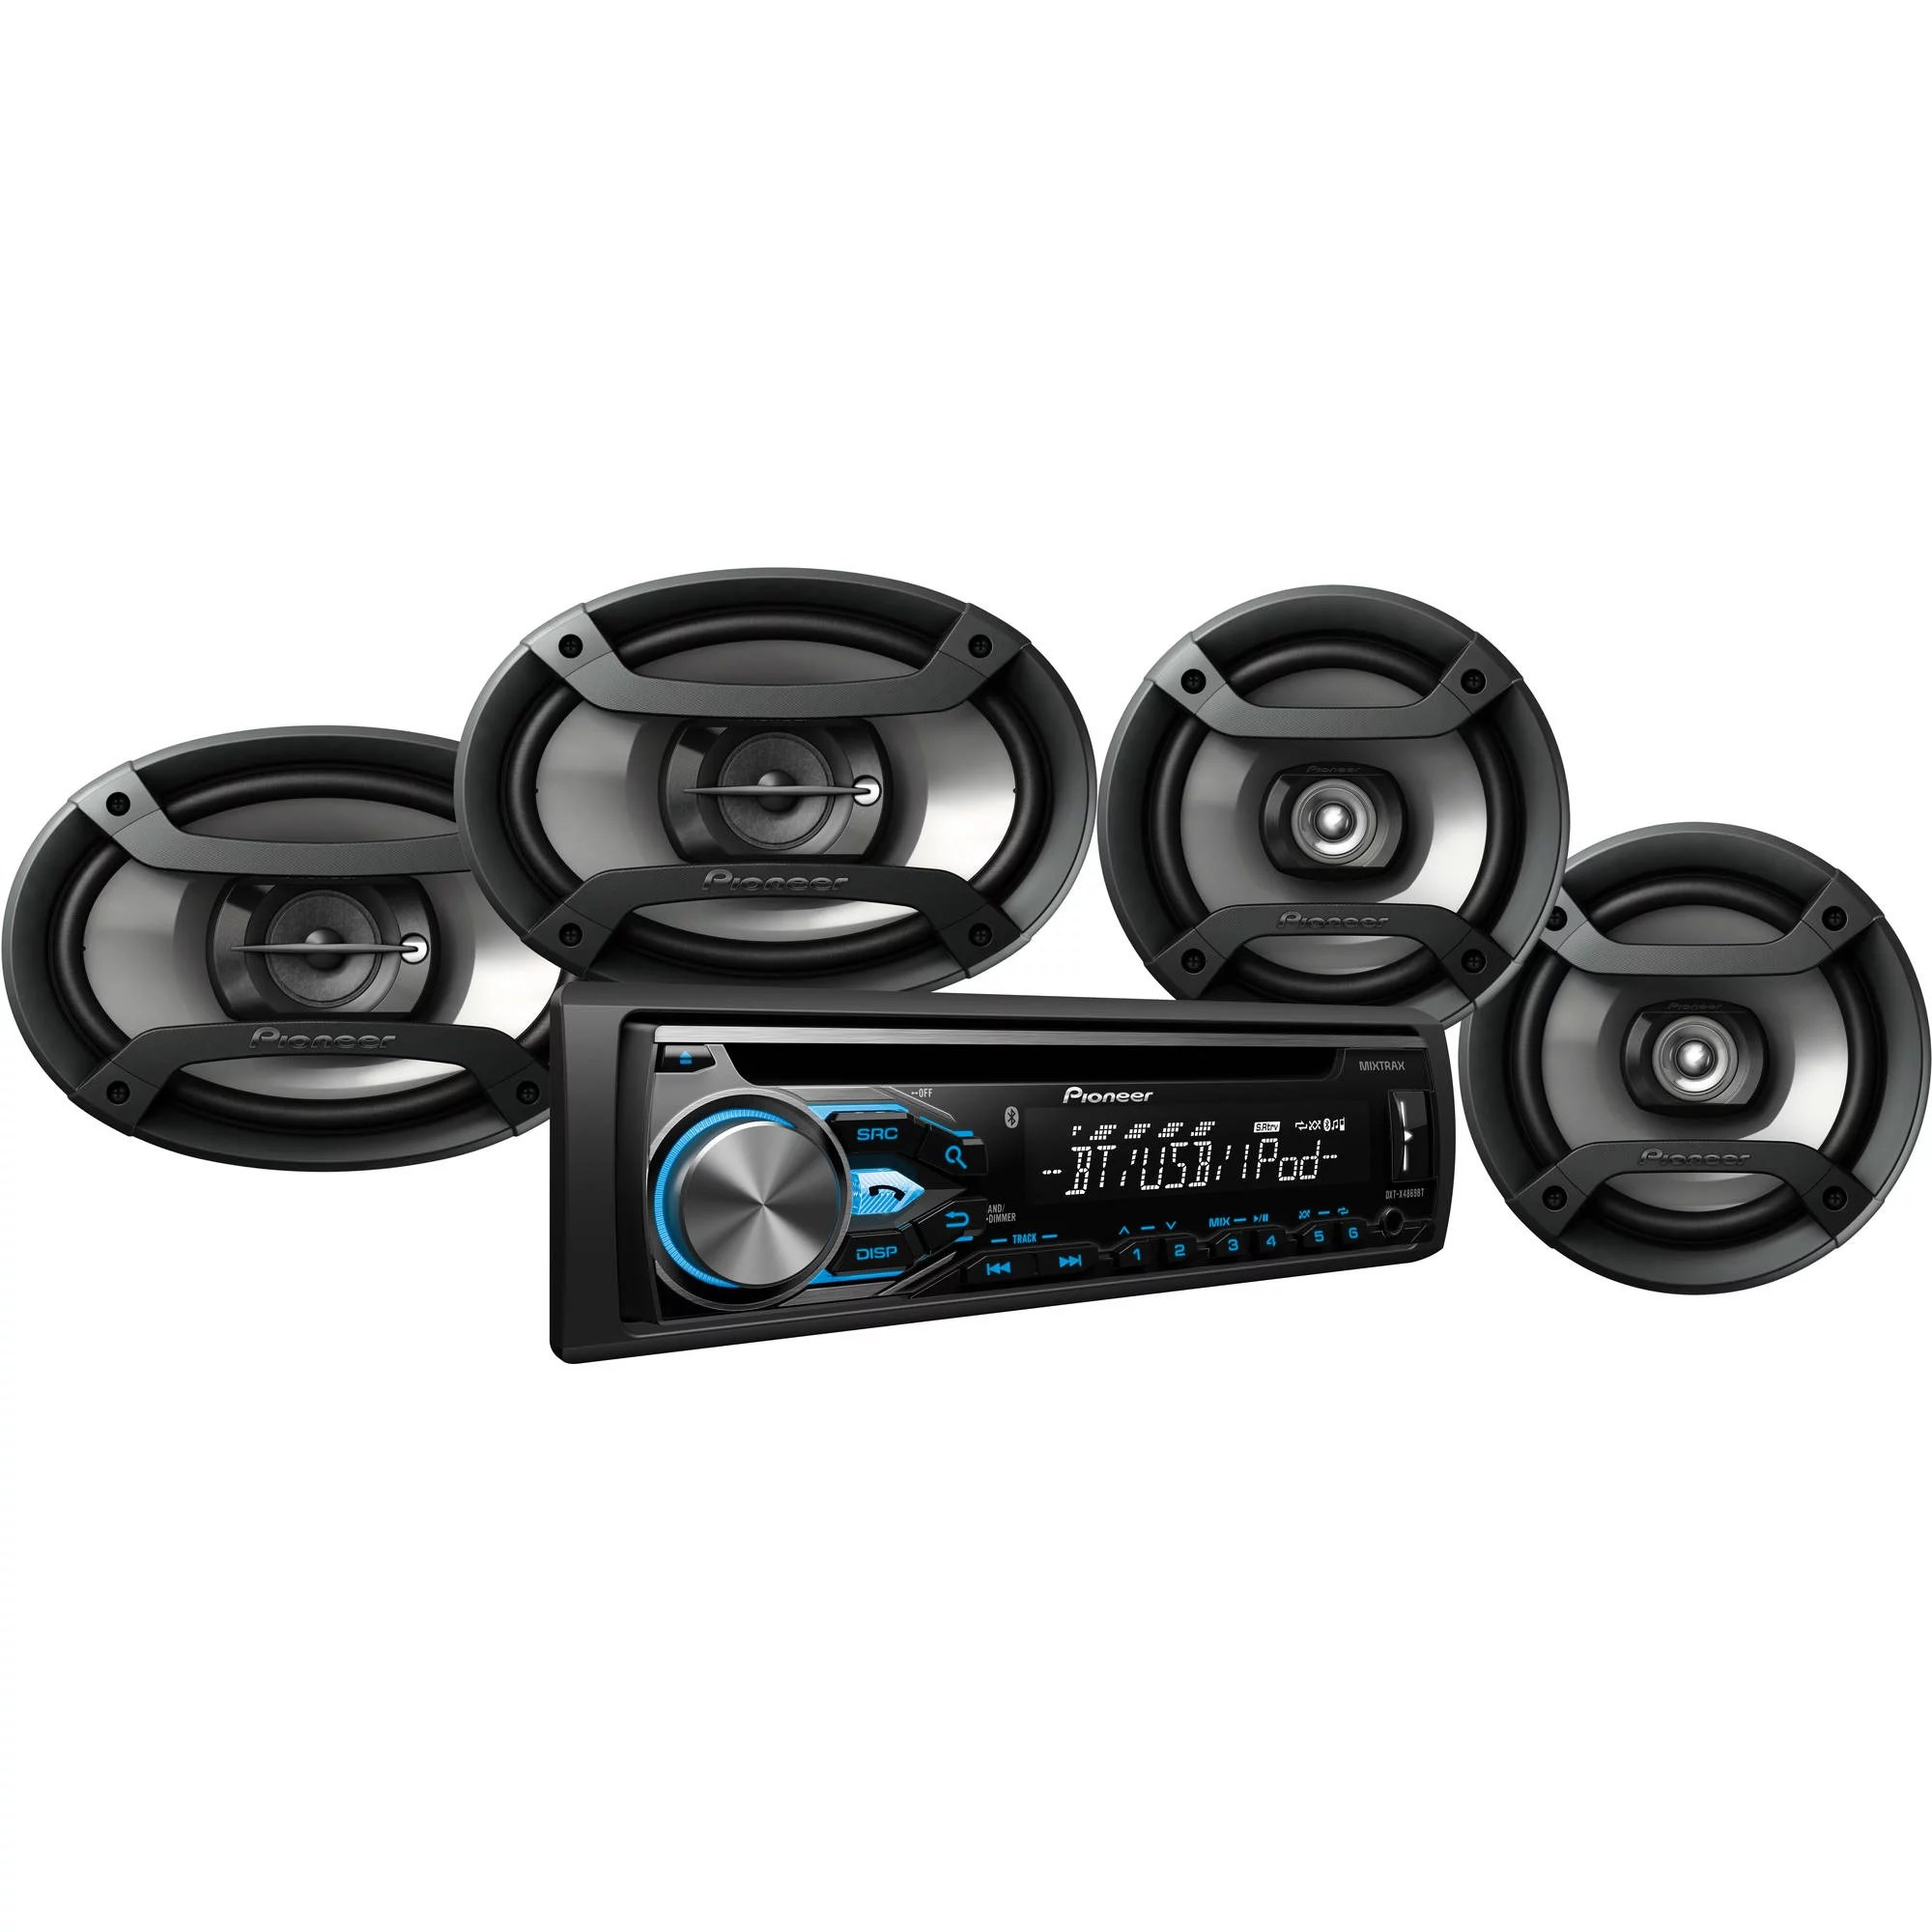 hight resolution of pioneer dxt x4869bt bluetooth cd car stereo receiver bundle with two 6 5 speakers and two 6 x 9 speakers w remote walmart com